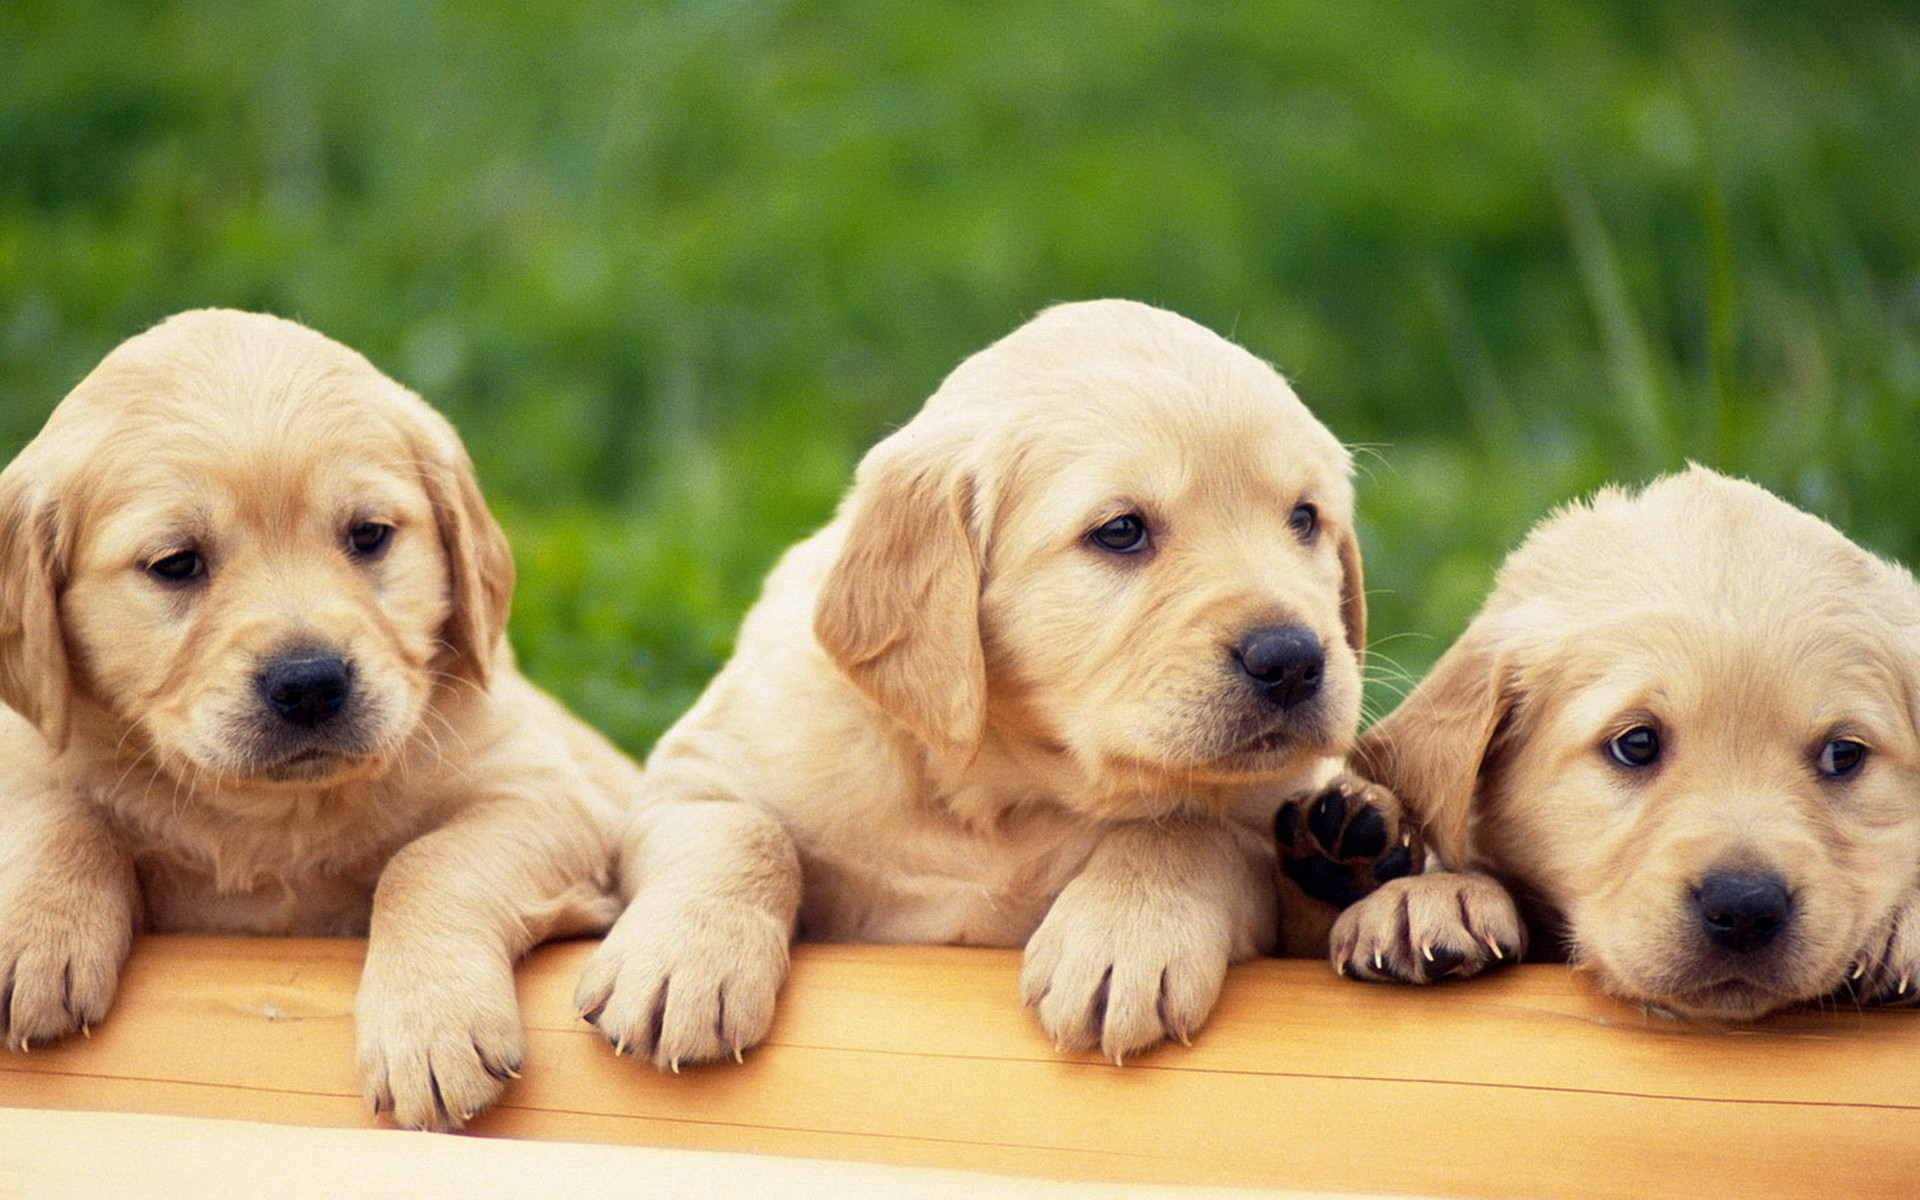 Yellow Labrador Puppies Wallpapers Desktop Backgrounds 1920x1200 Id 1920x1200